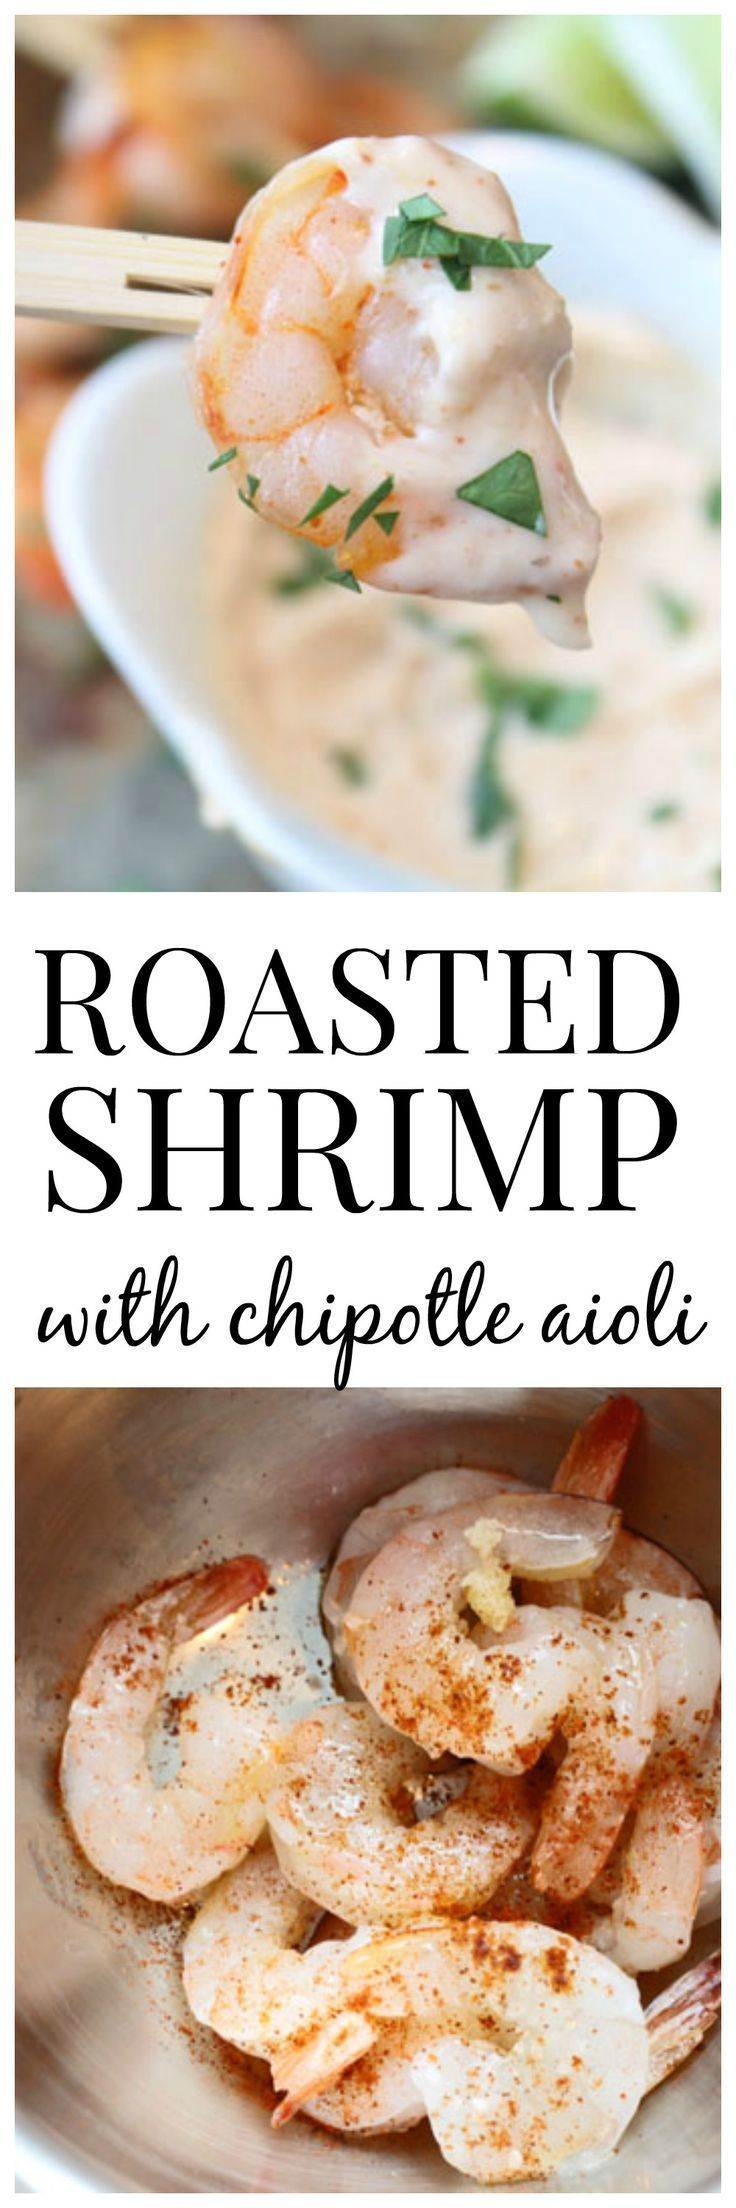 Roasted Shrimp Cocktail with Chipotle Aioli - The EASIEST, most tasty party bite!